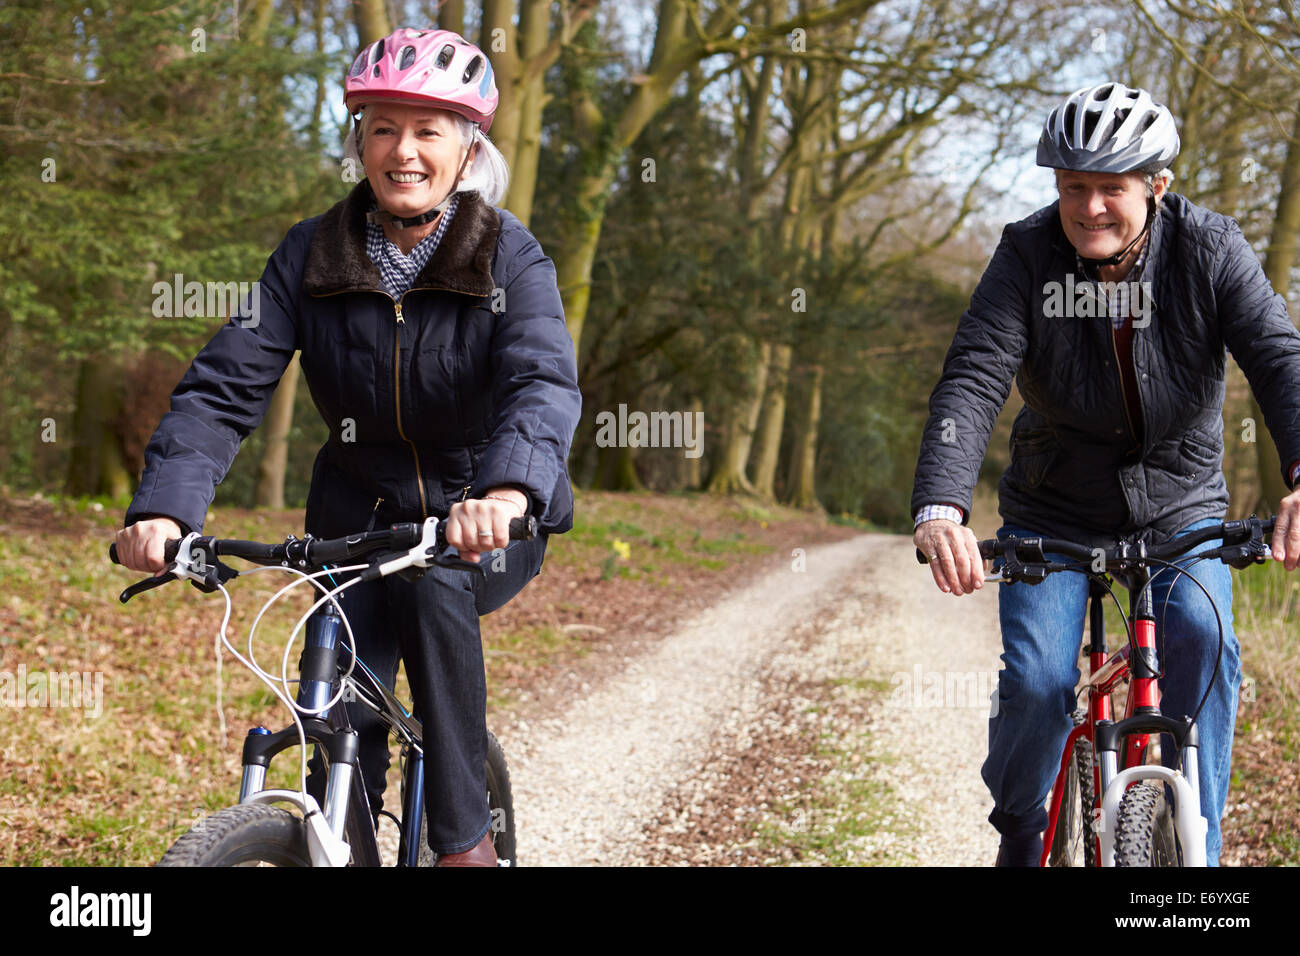 Couple Cycling Along Urban Street Together - Stock Image